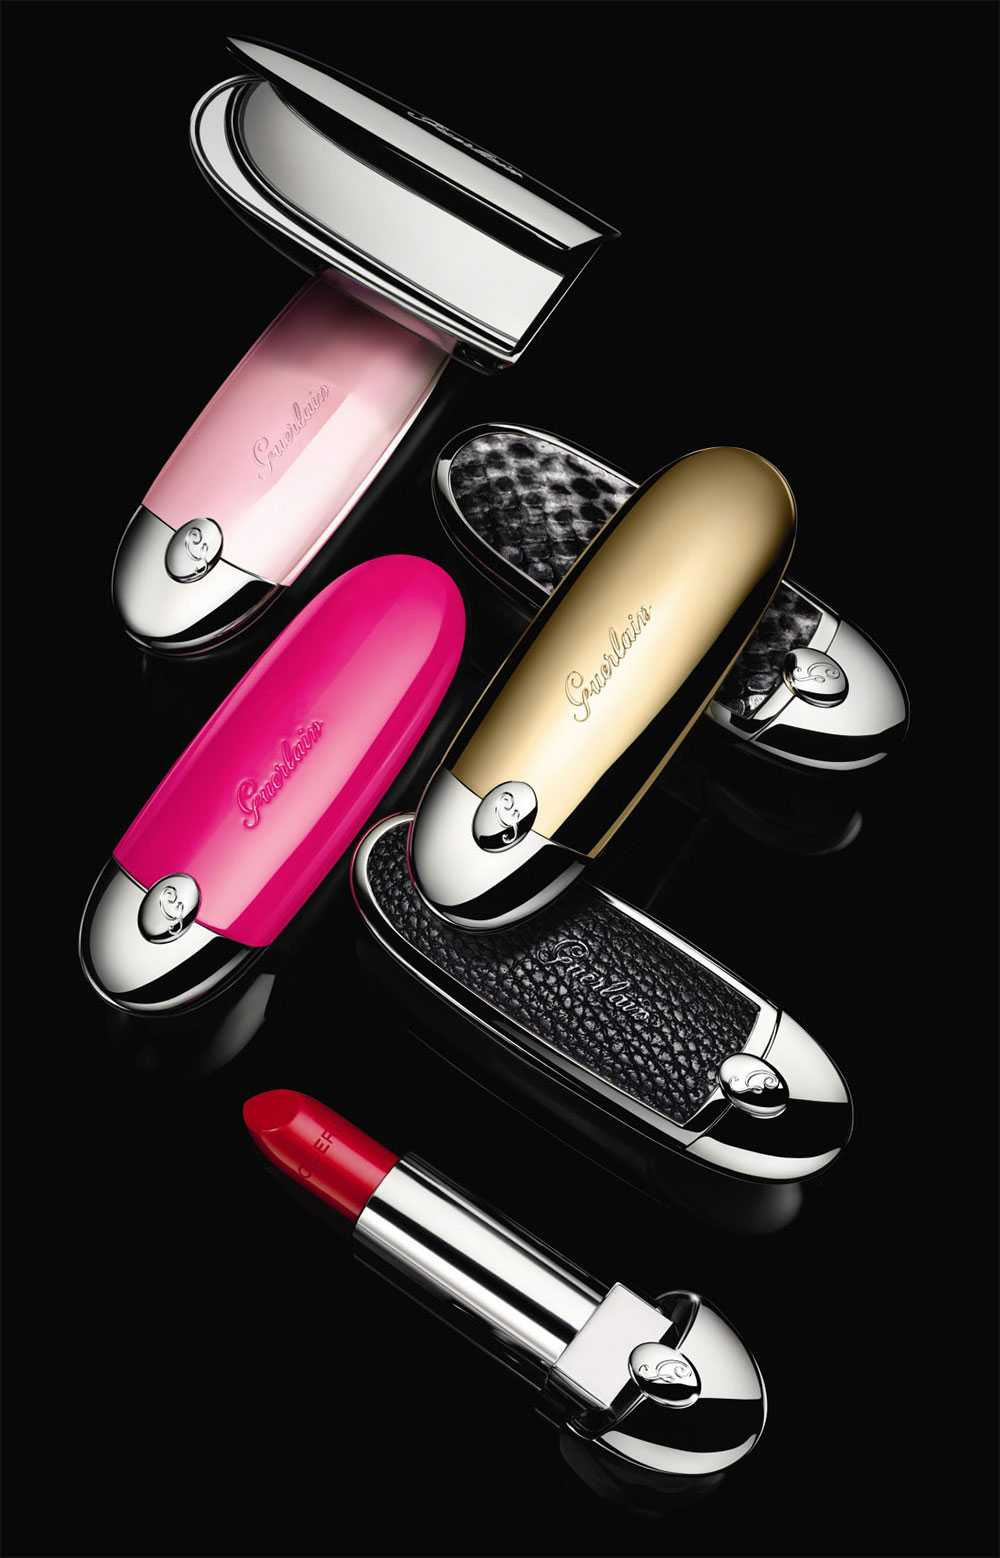 Lo Specchio Film Rossetti Guerlain My Rouge G: Packaging Con Case